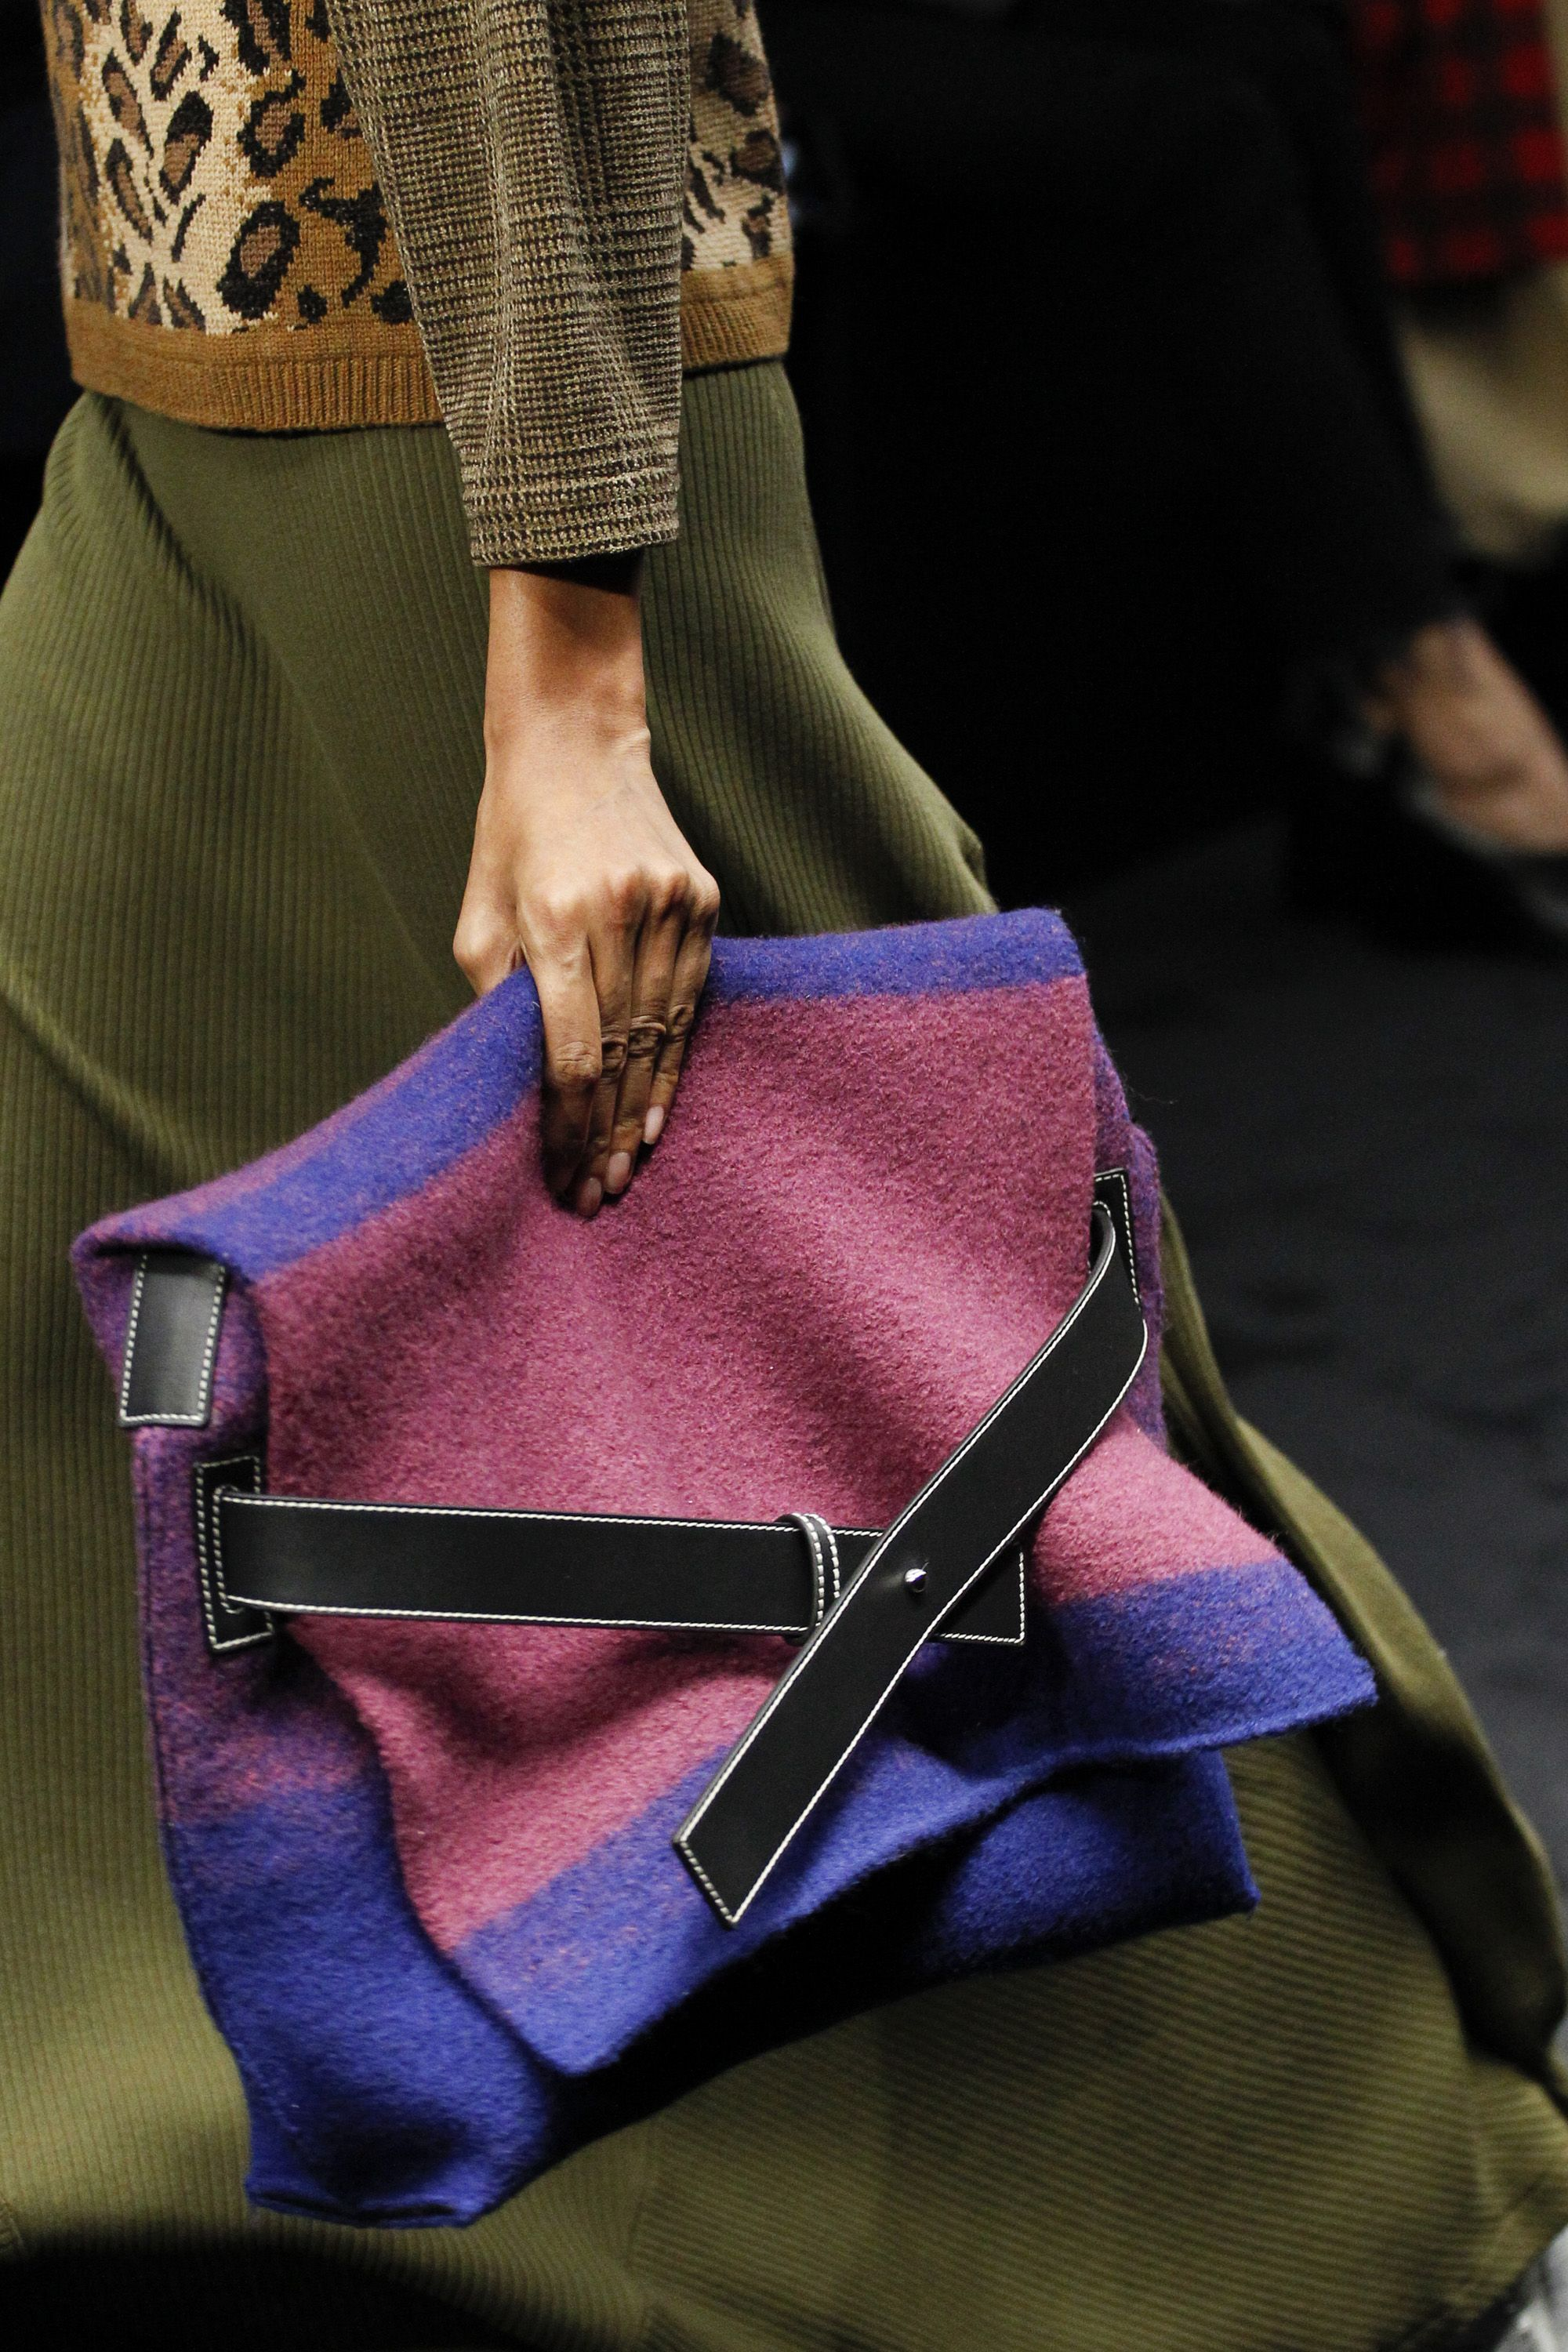 Loewe Autumn Winter 2017 Ready To Wear Details Women S Accessories Bags Leather Suede Fashion Designer Crossbody Totes Tote